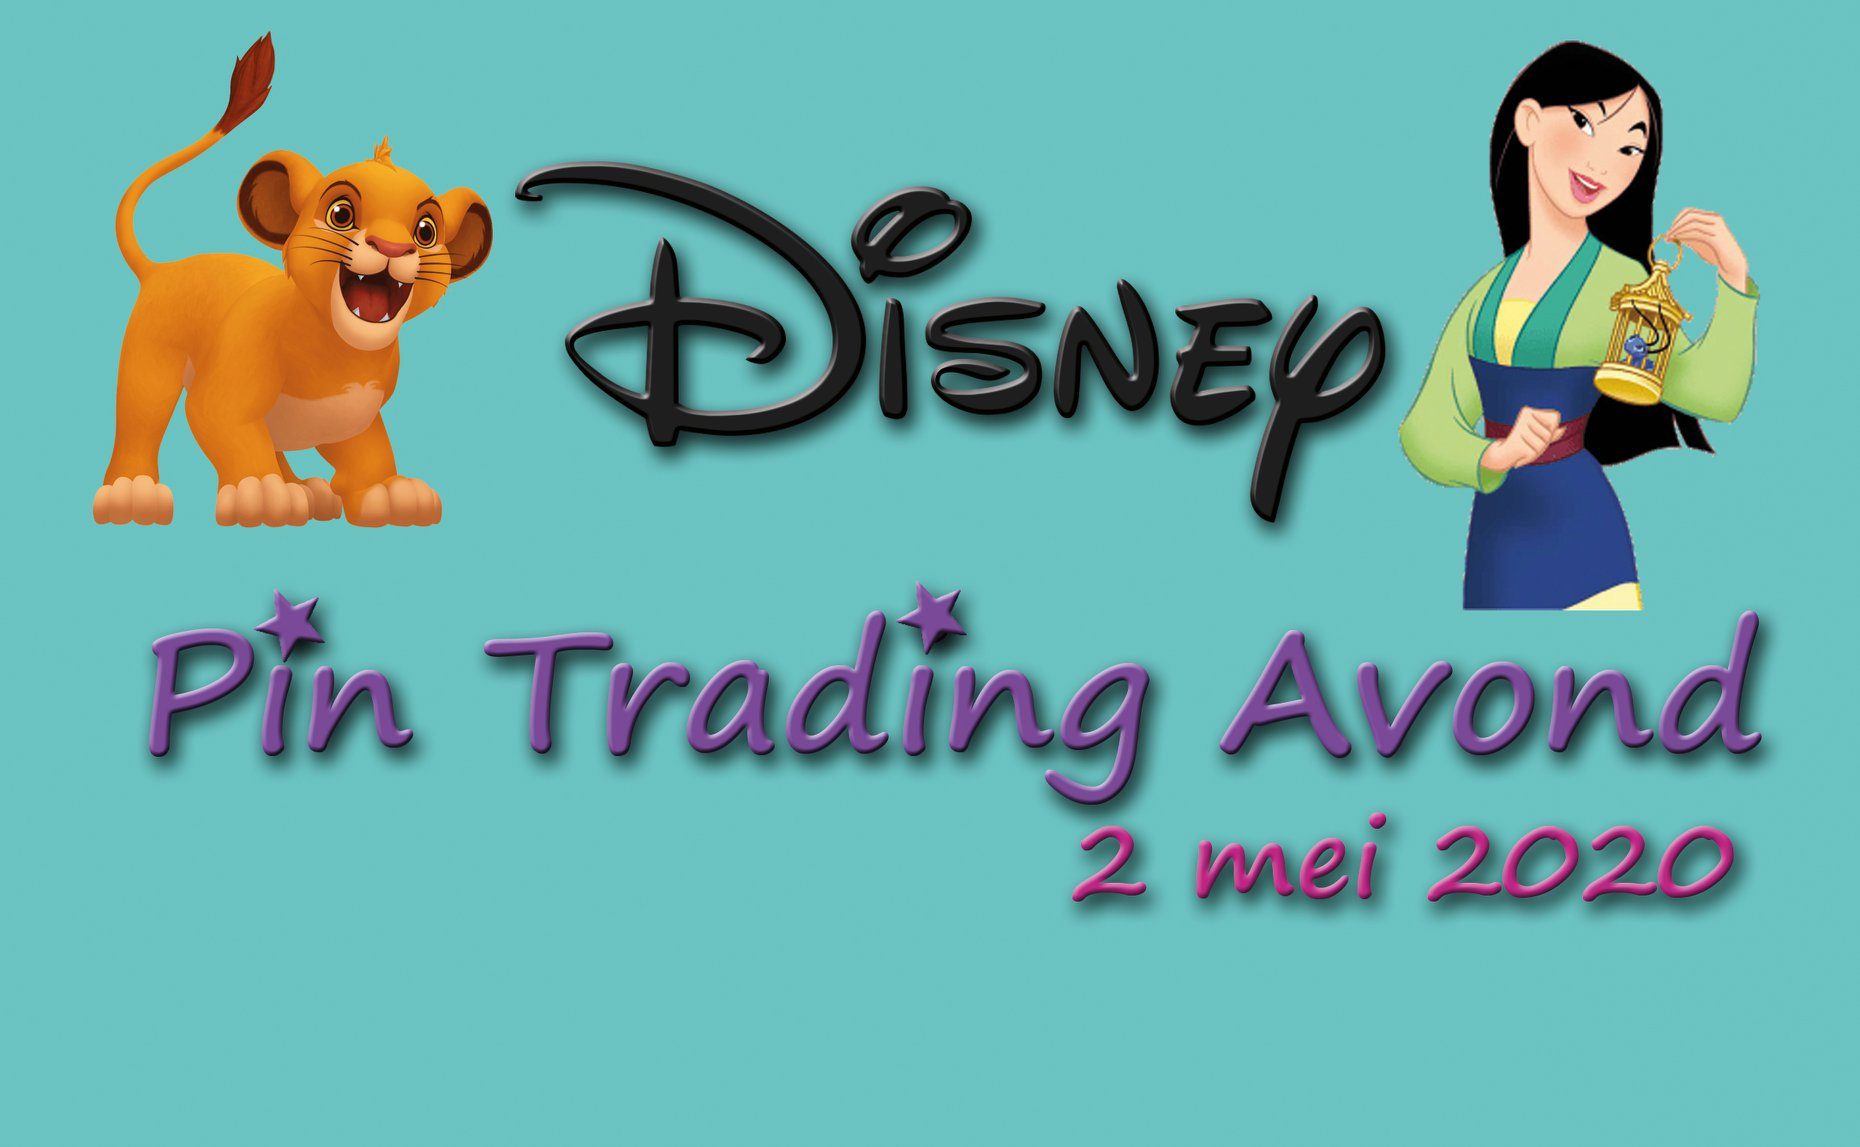 CANCELLED 12th Pin Trading Avond